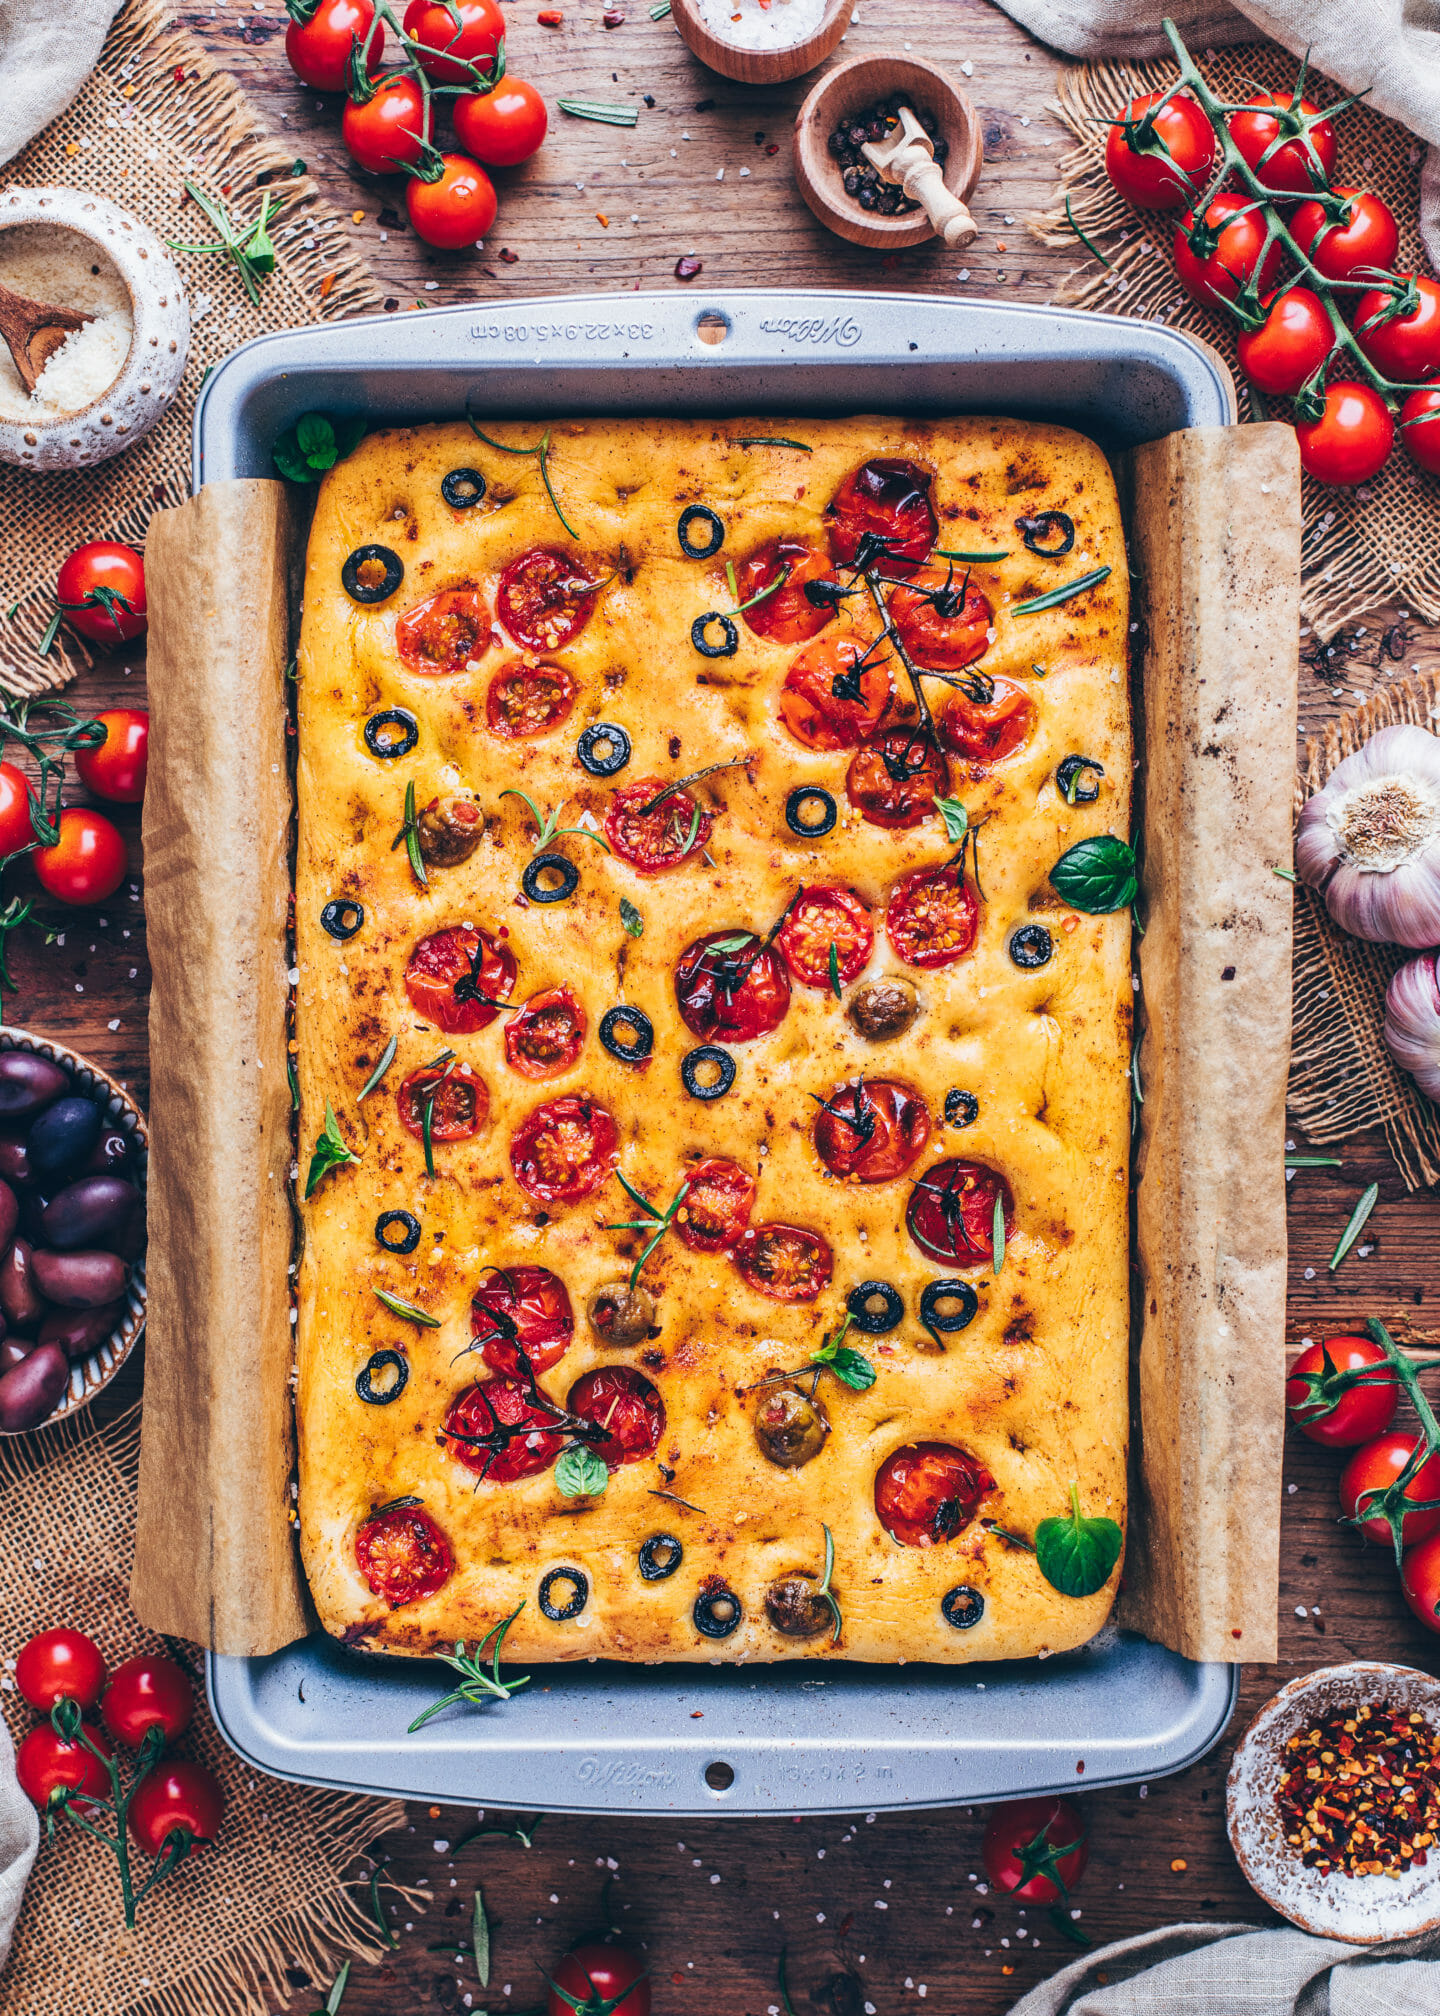 Vegan Focaccia Bread with cherry tomatoes, olives, rosemary, and sea salt